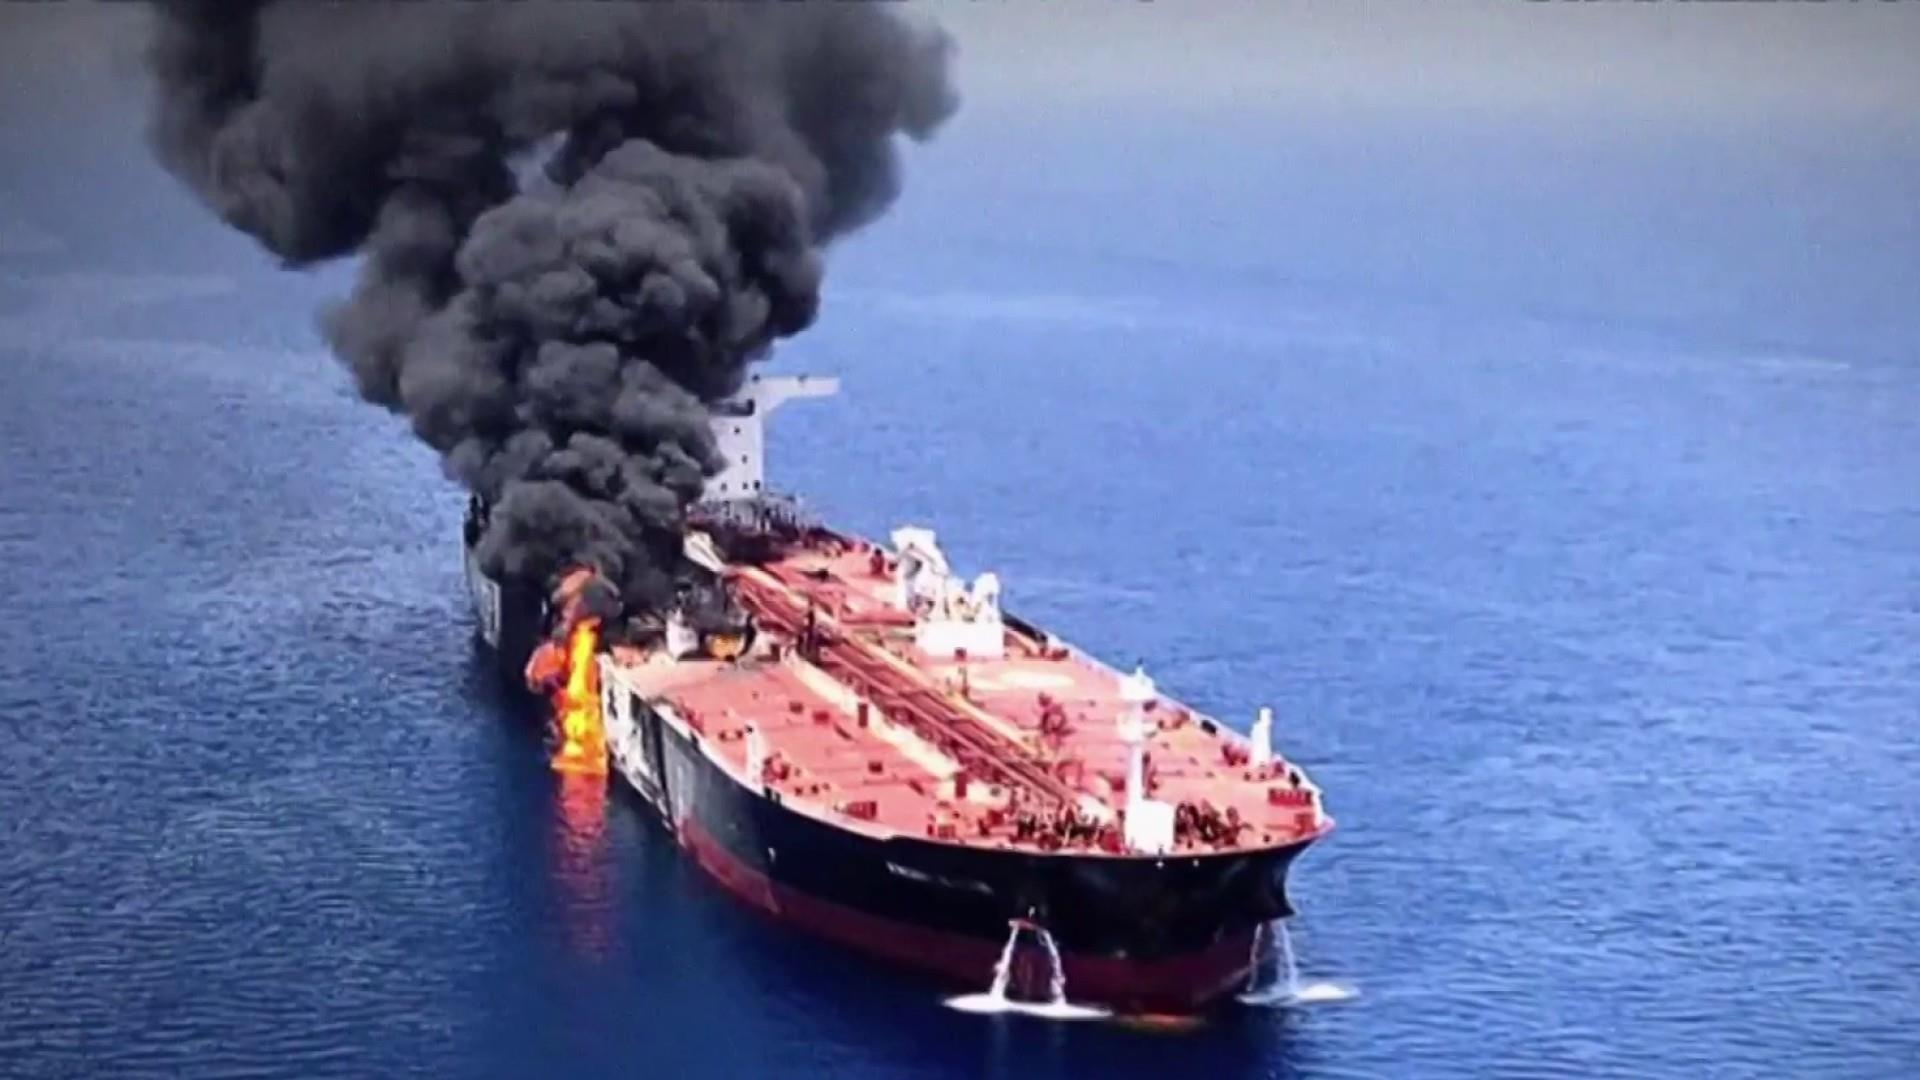 Pompeo blames Iran for attacks on tankers, says 'we don't want war'